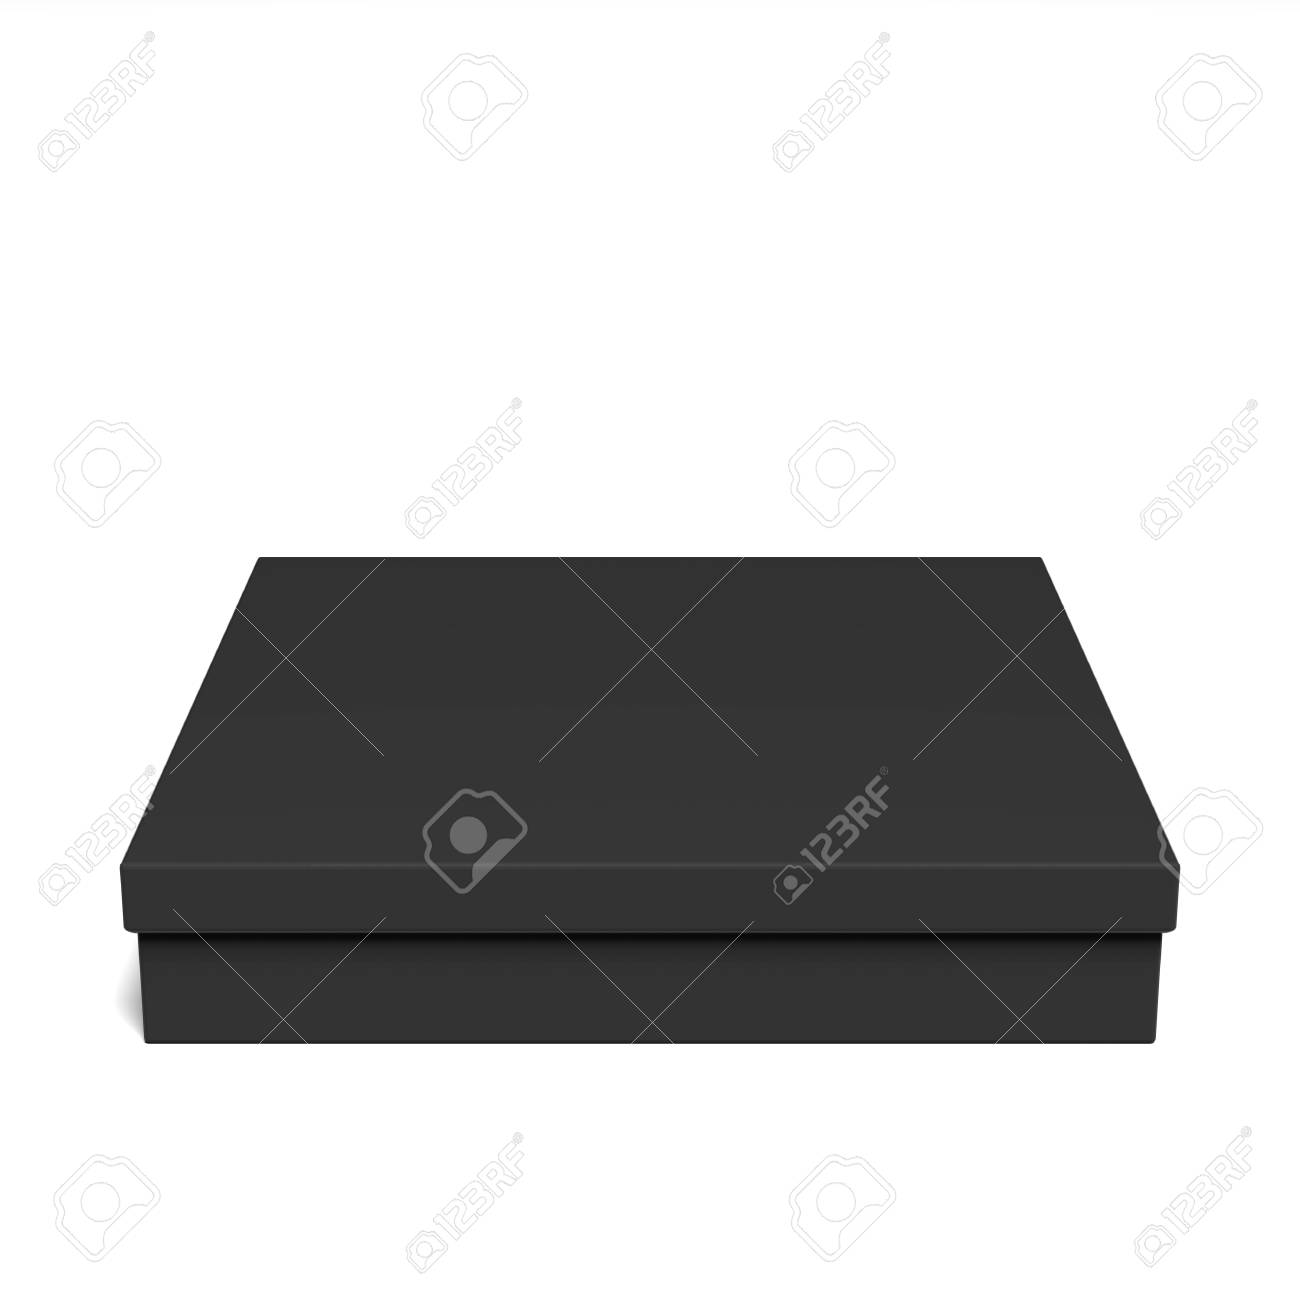 Blank Cardboard Box Template On A Grey Background Packaging Collection 3D Rendering Stock Photo